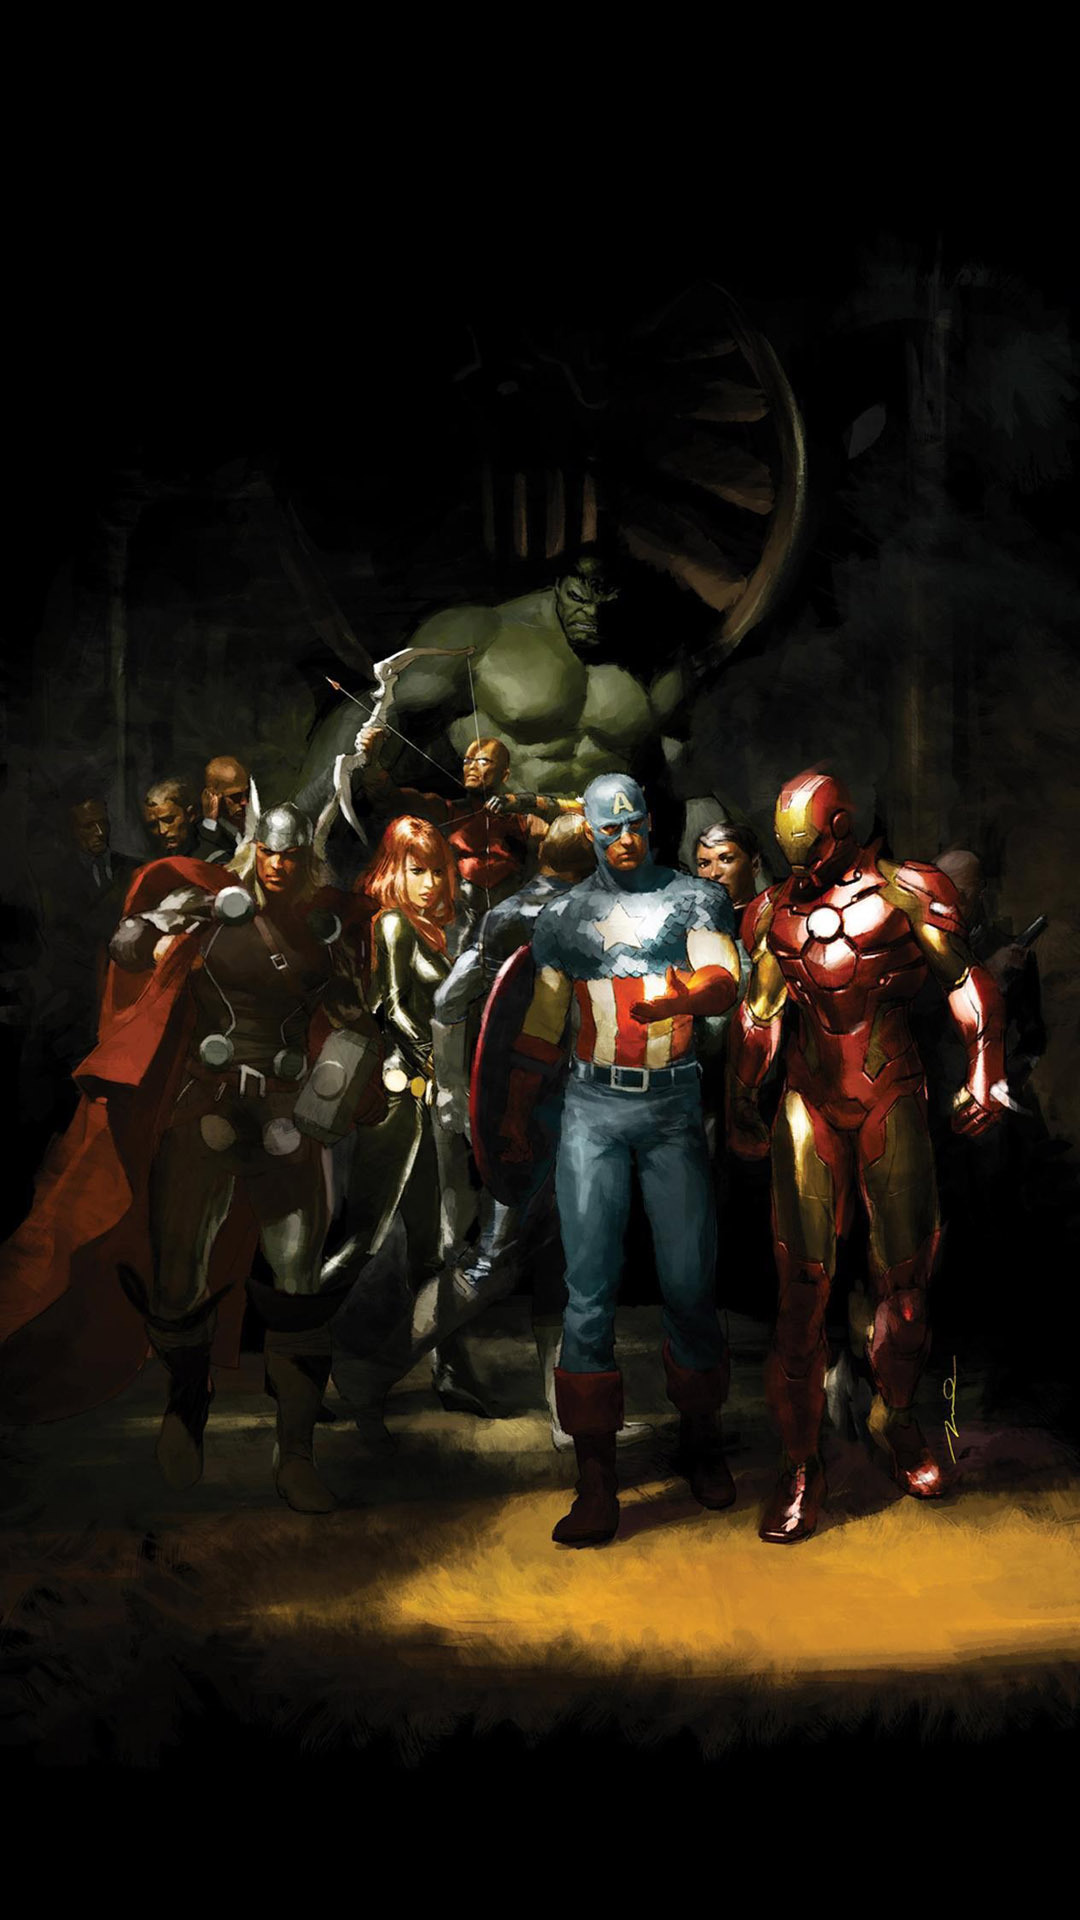 Avengers Iphone Wallpaper Hd Pixelstalknet